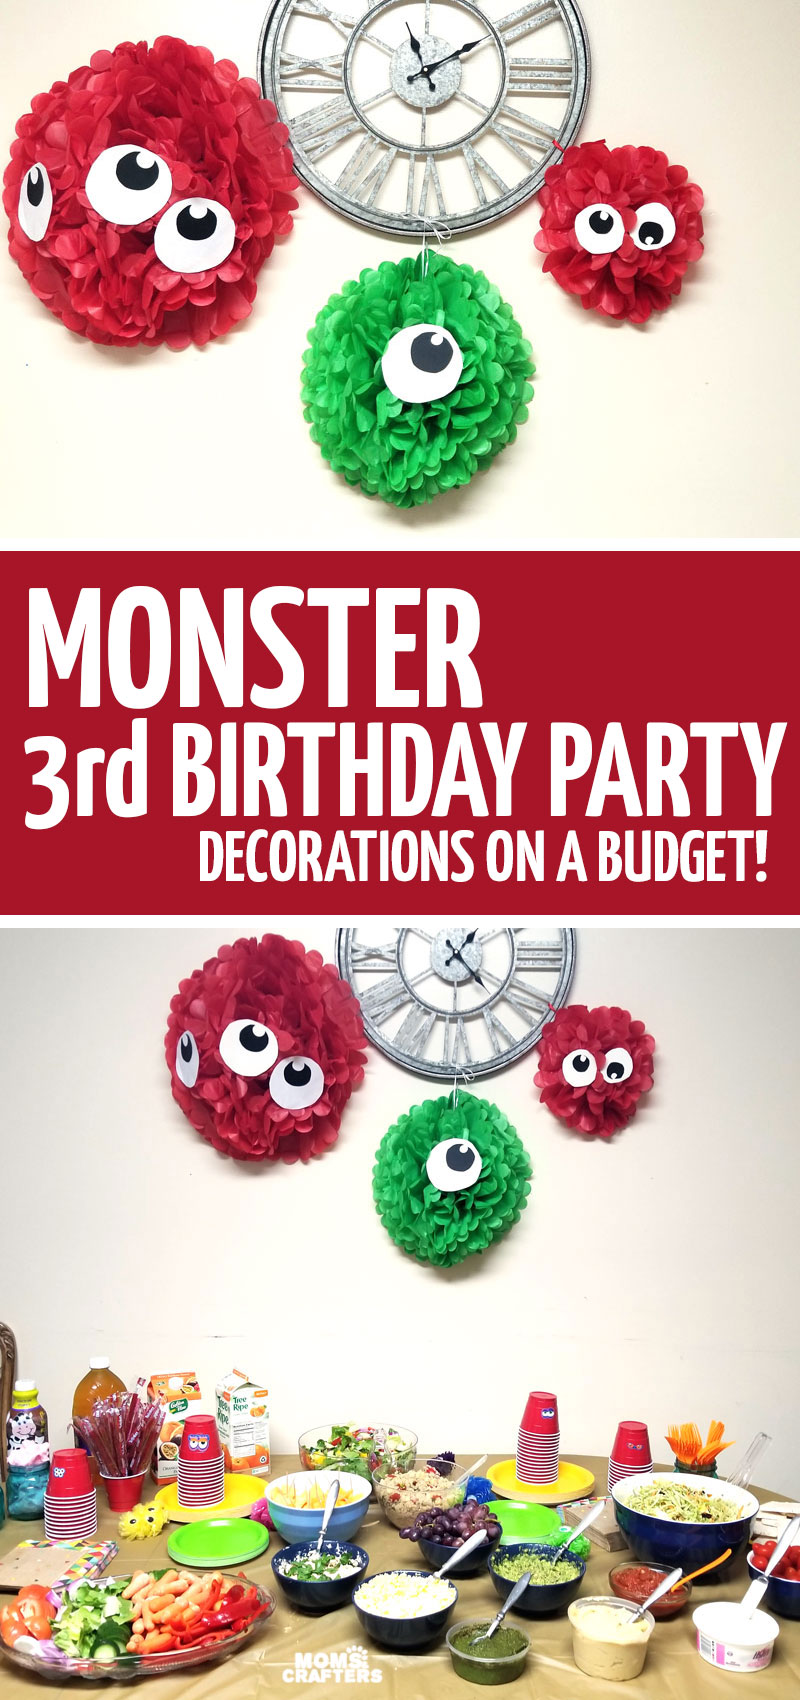 Click for easy DIY monster party decorations for a hairy monster themed birthday party. This was my son's first haircut, and is great for upsherin ideas and themes.